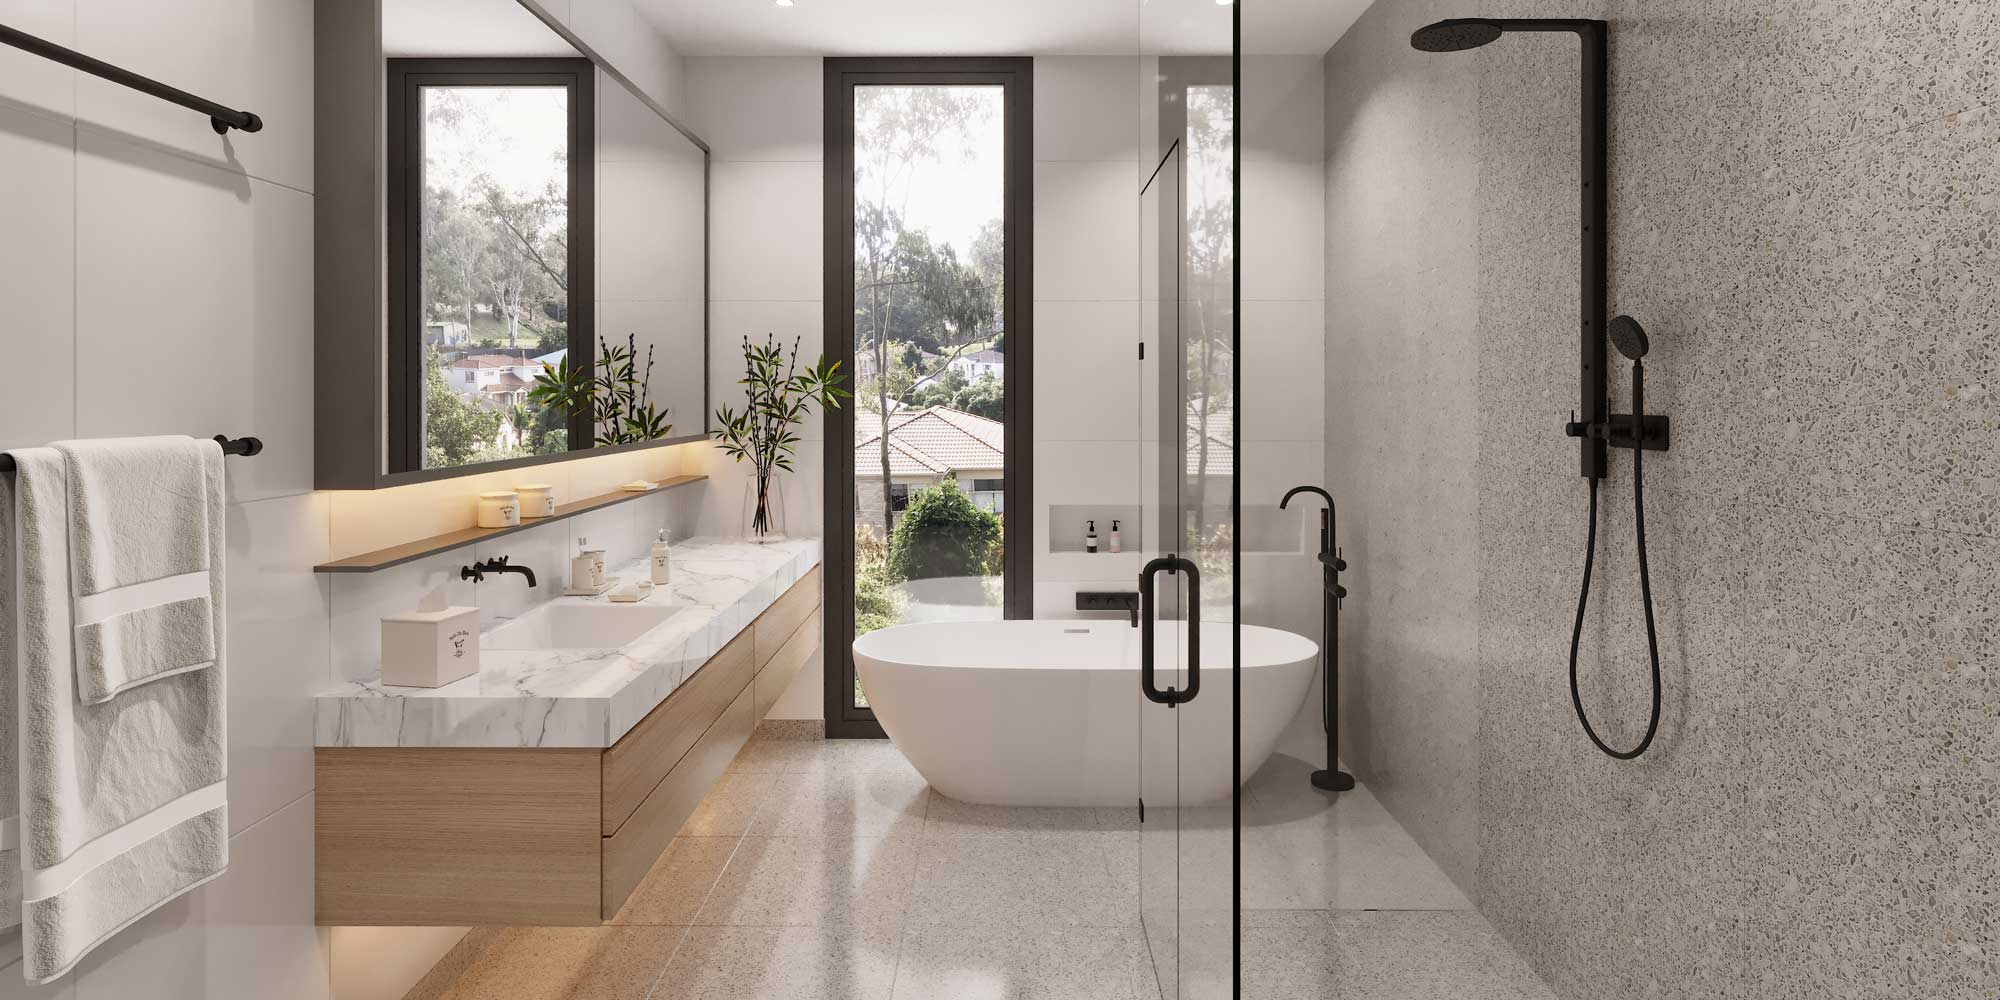 Bathroom at The Cascades | House and Land for Sale in Kenmore, Brisbane | Artist's Impression